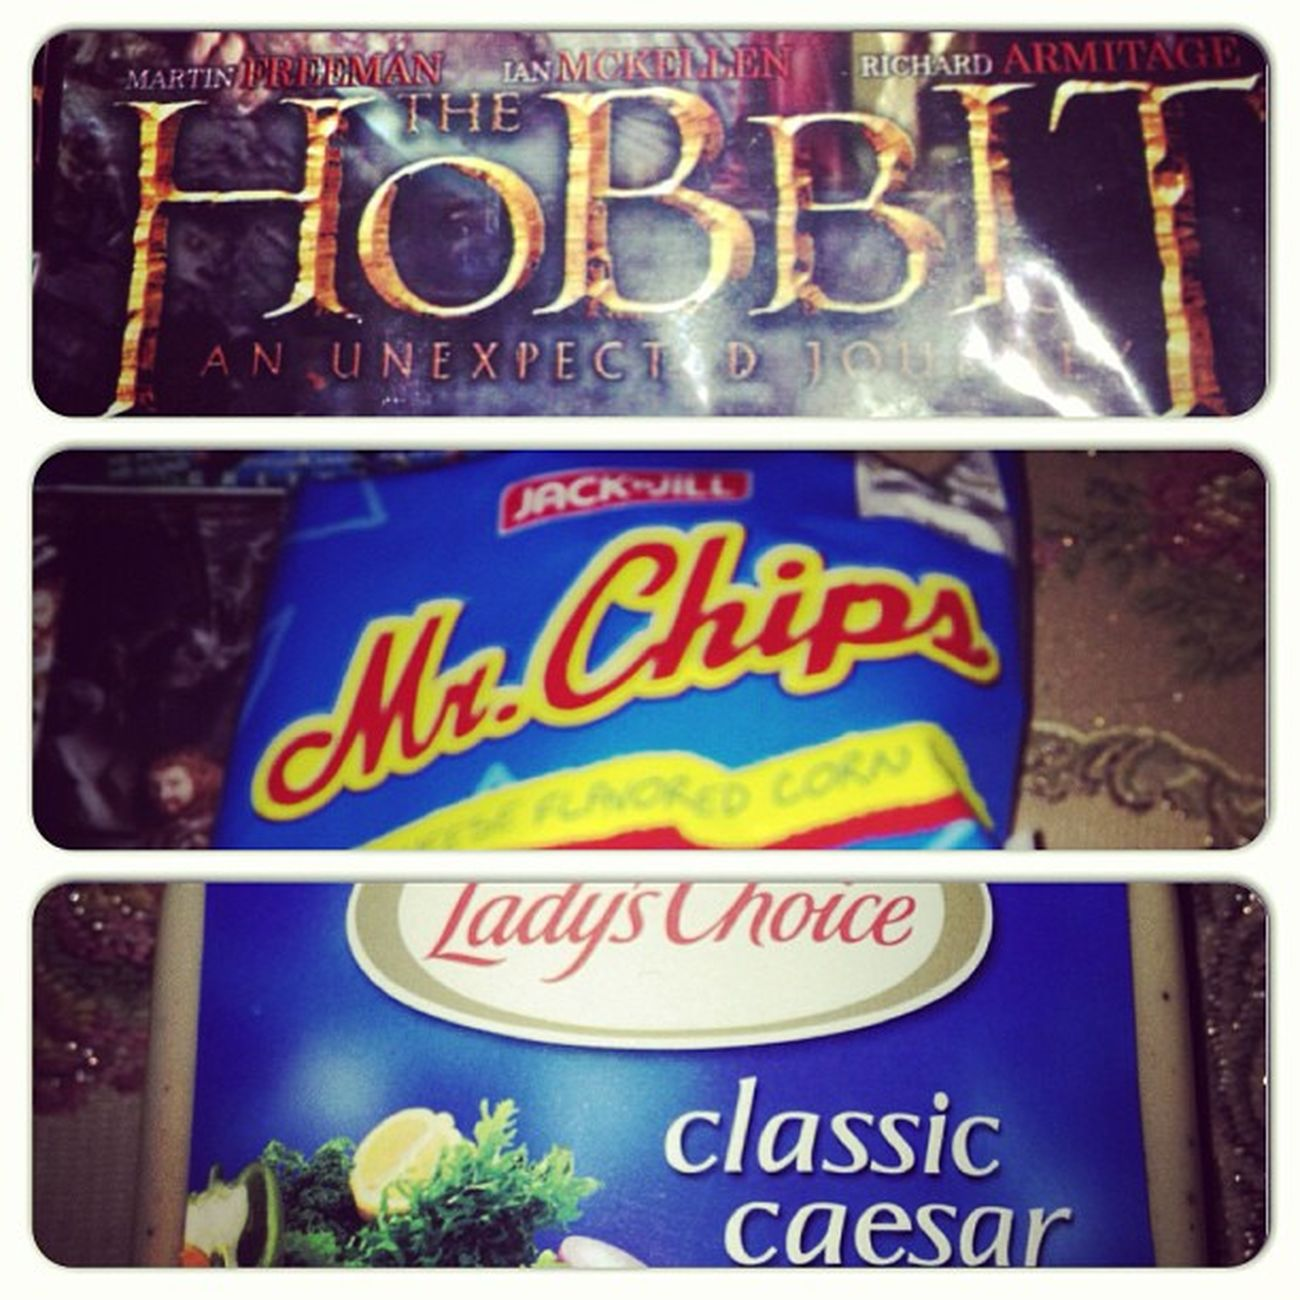 Nw TheHobbit Midnight Snacks Mr. Chips favorite dip caesar perfect life comfort food